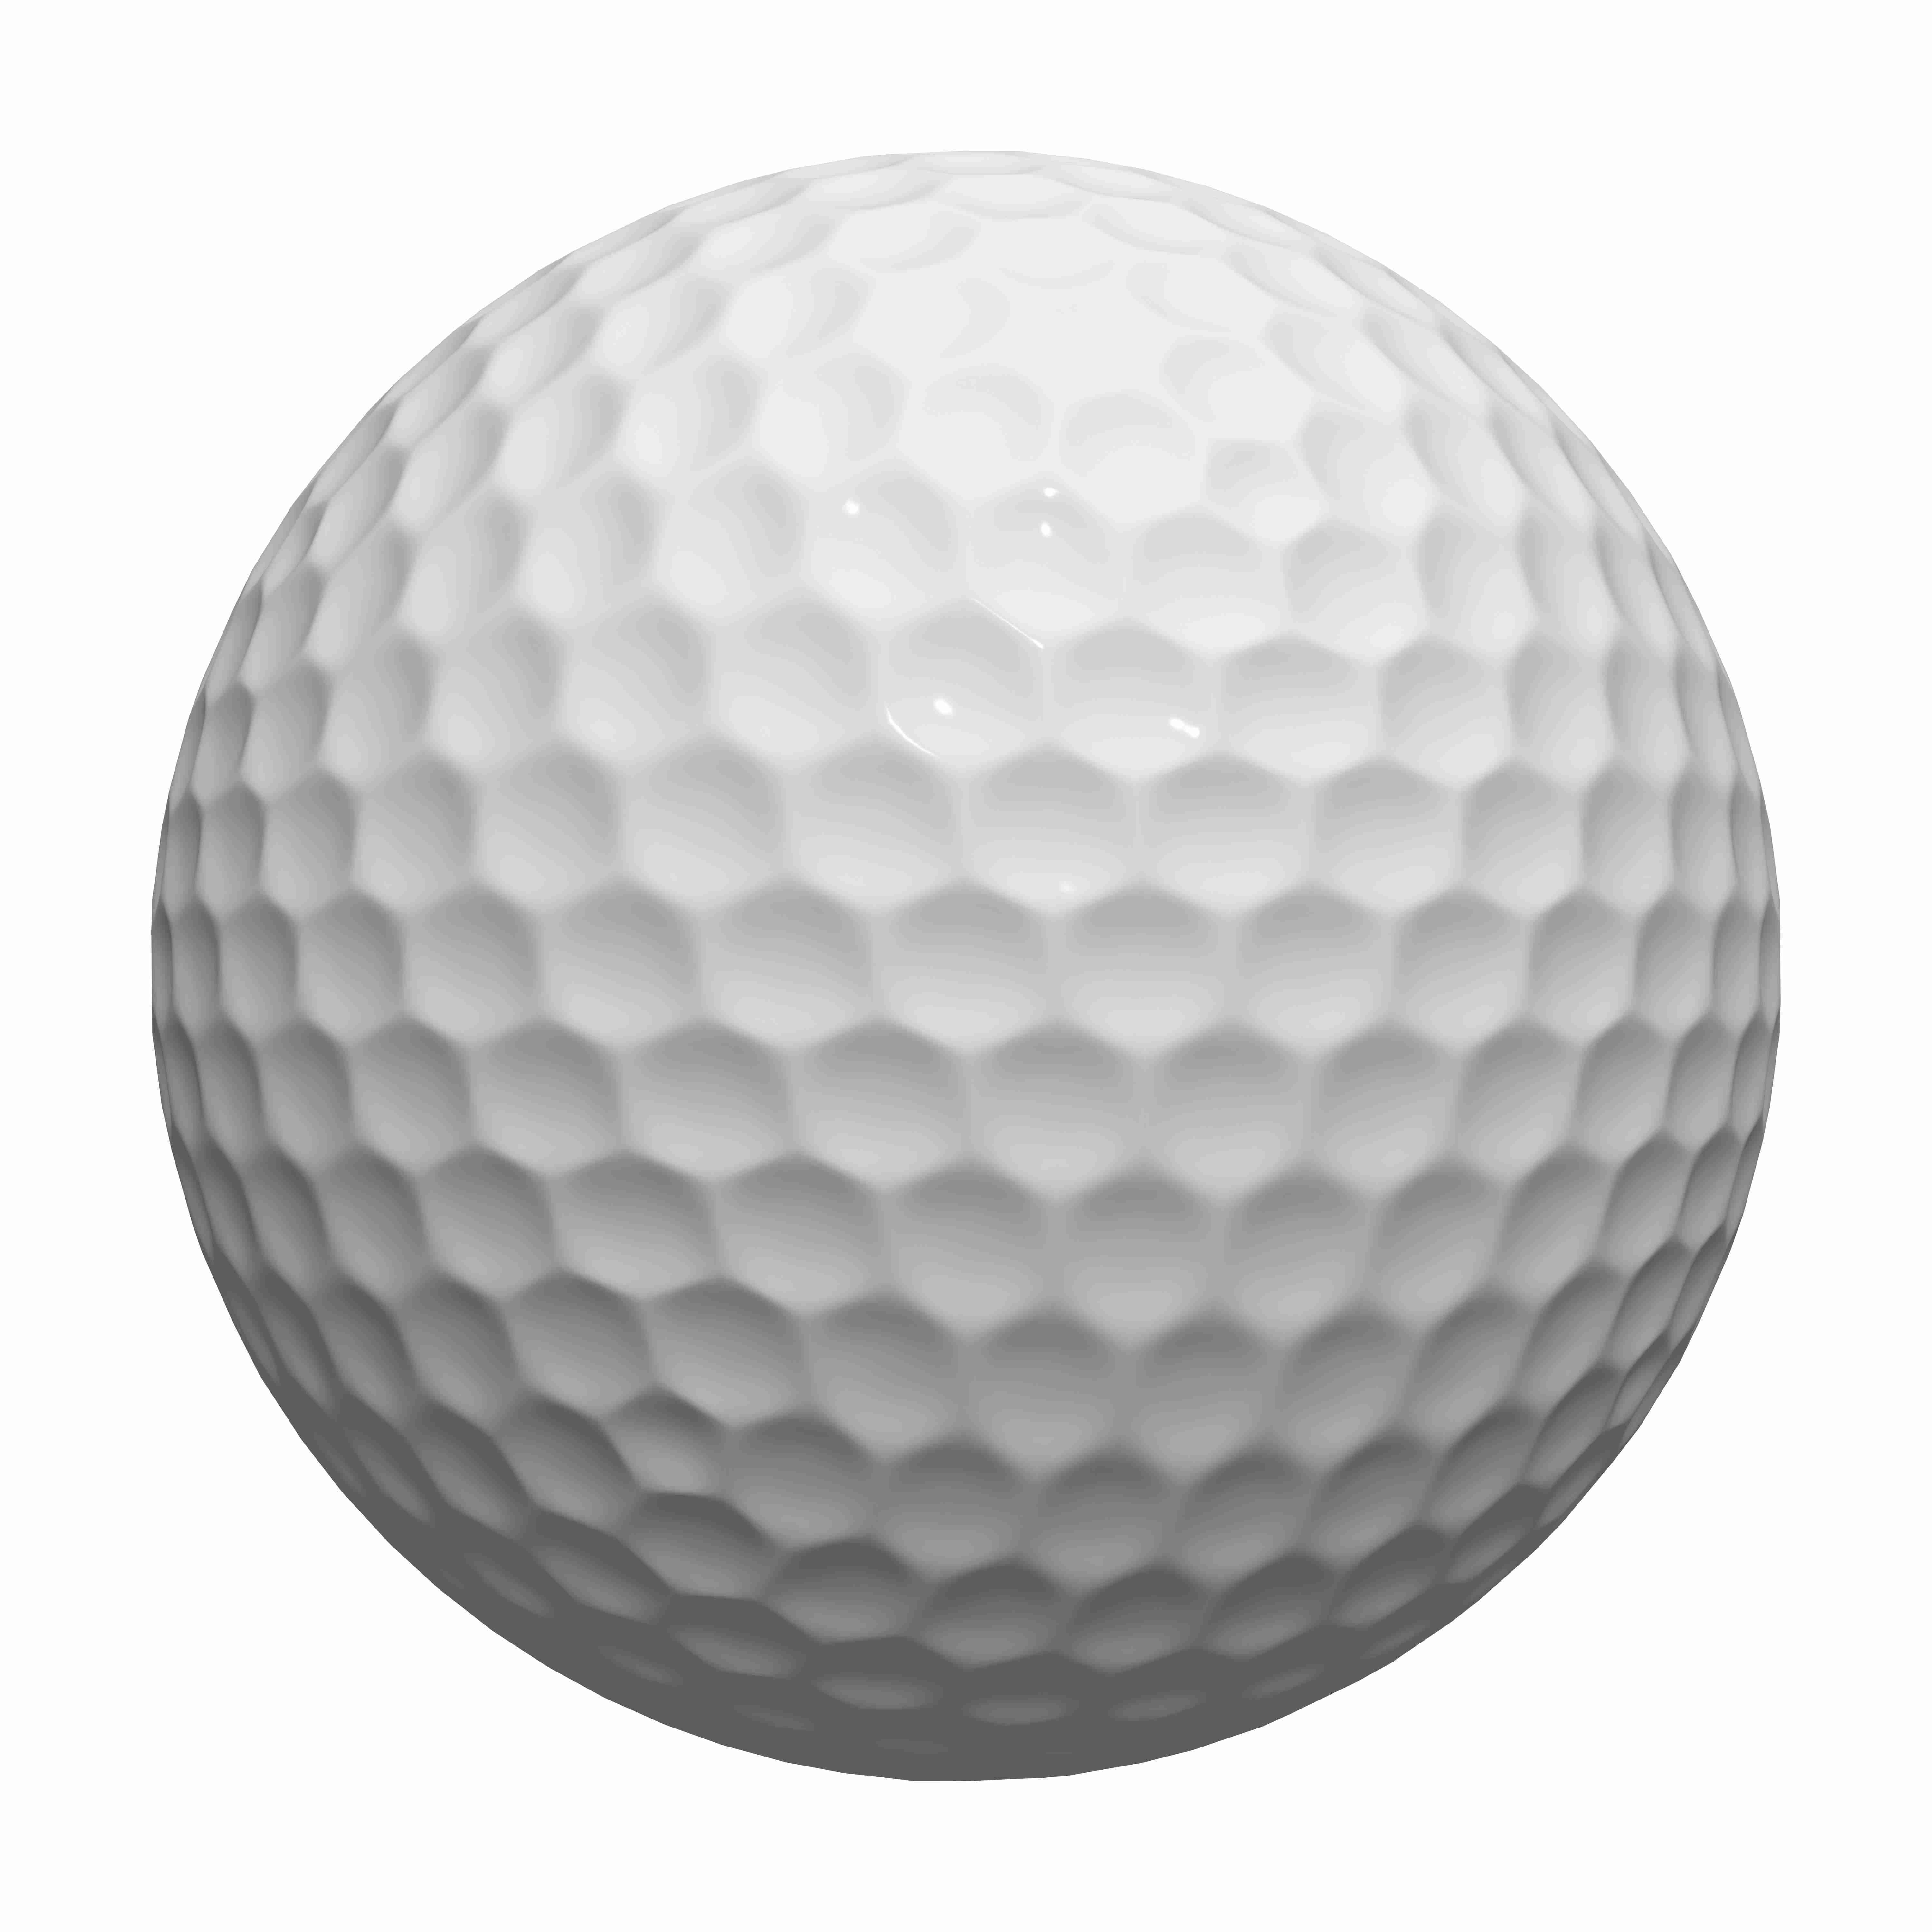 3d rendered illustration of a golf ball